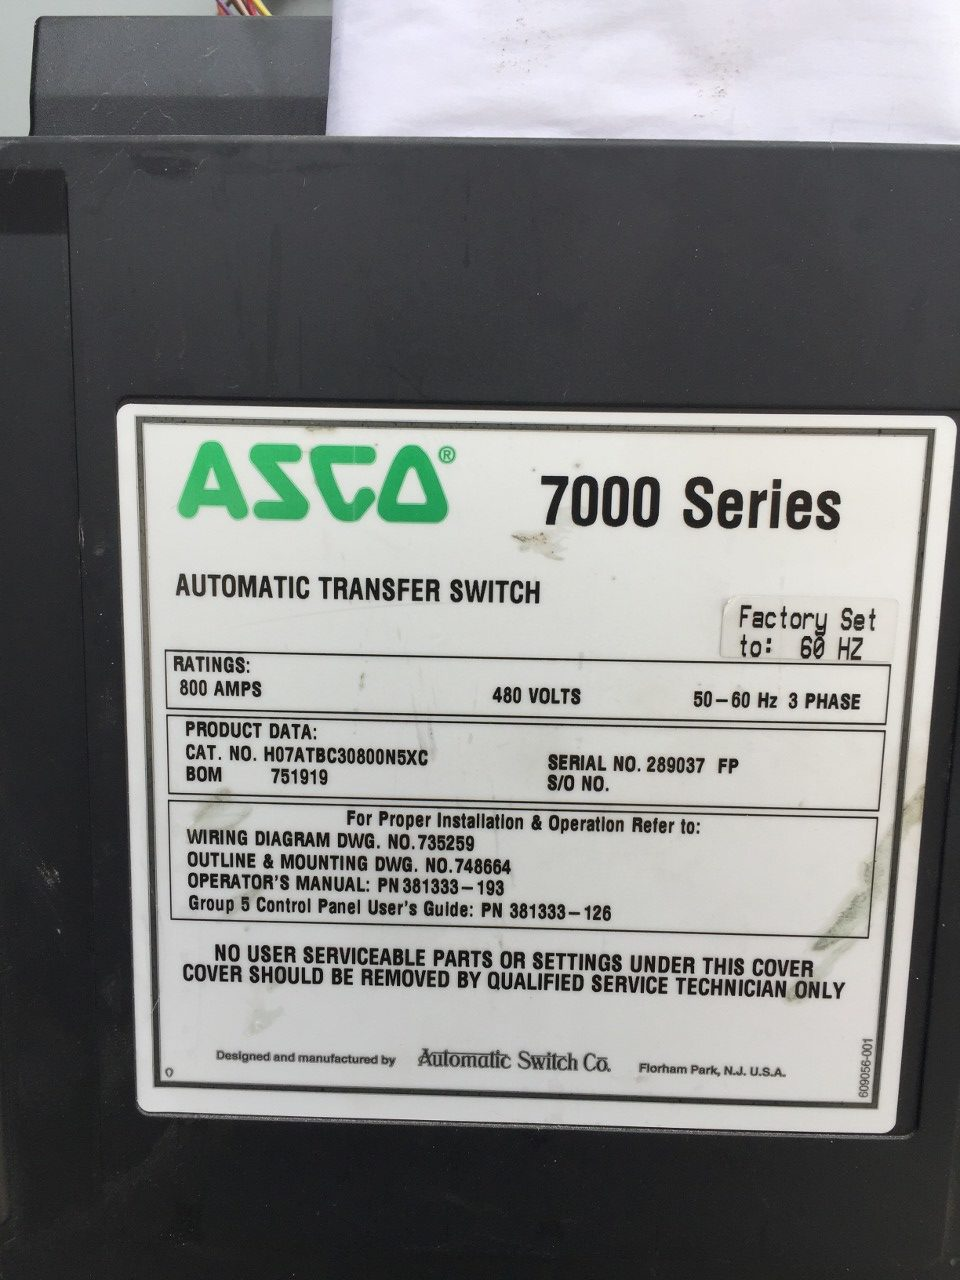 ASCO Series Automatic Transfer Switch - Asco 7000 series automatic transfer switch wiring diagram